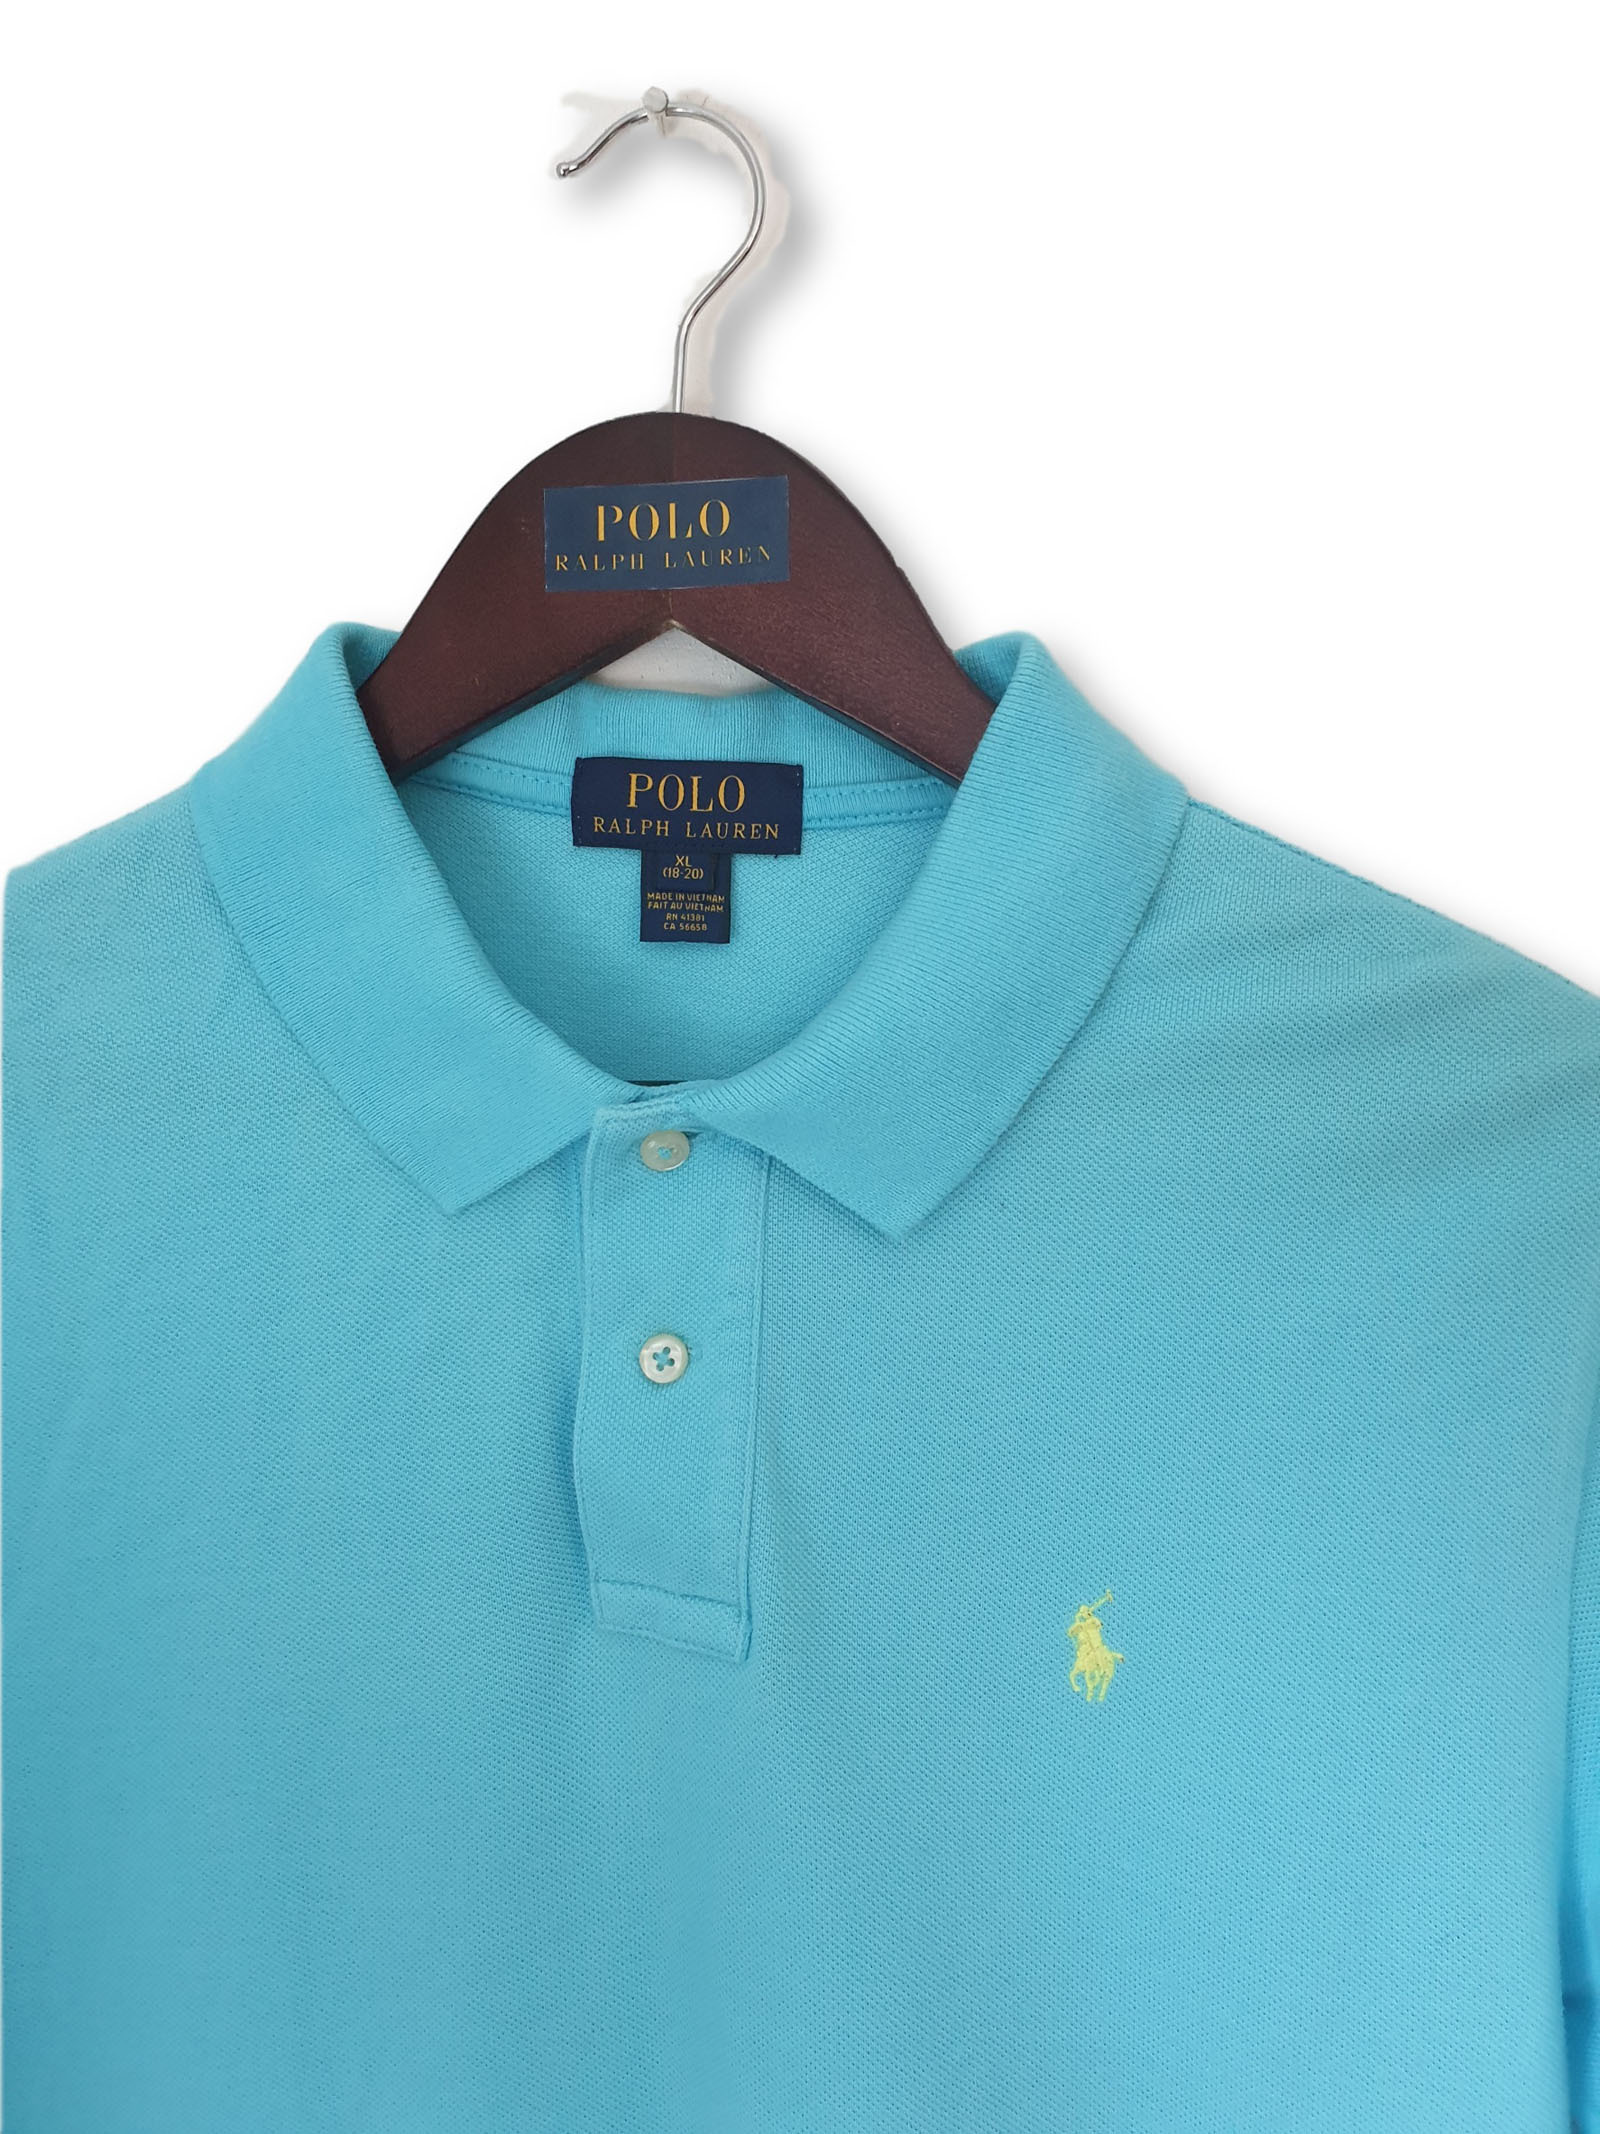 Age Vibrant Blue About Youth Polo Lauren 20 Modern Ralph Label Details 18 Xlvgc XZPkiu